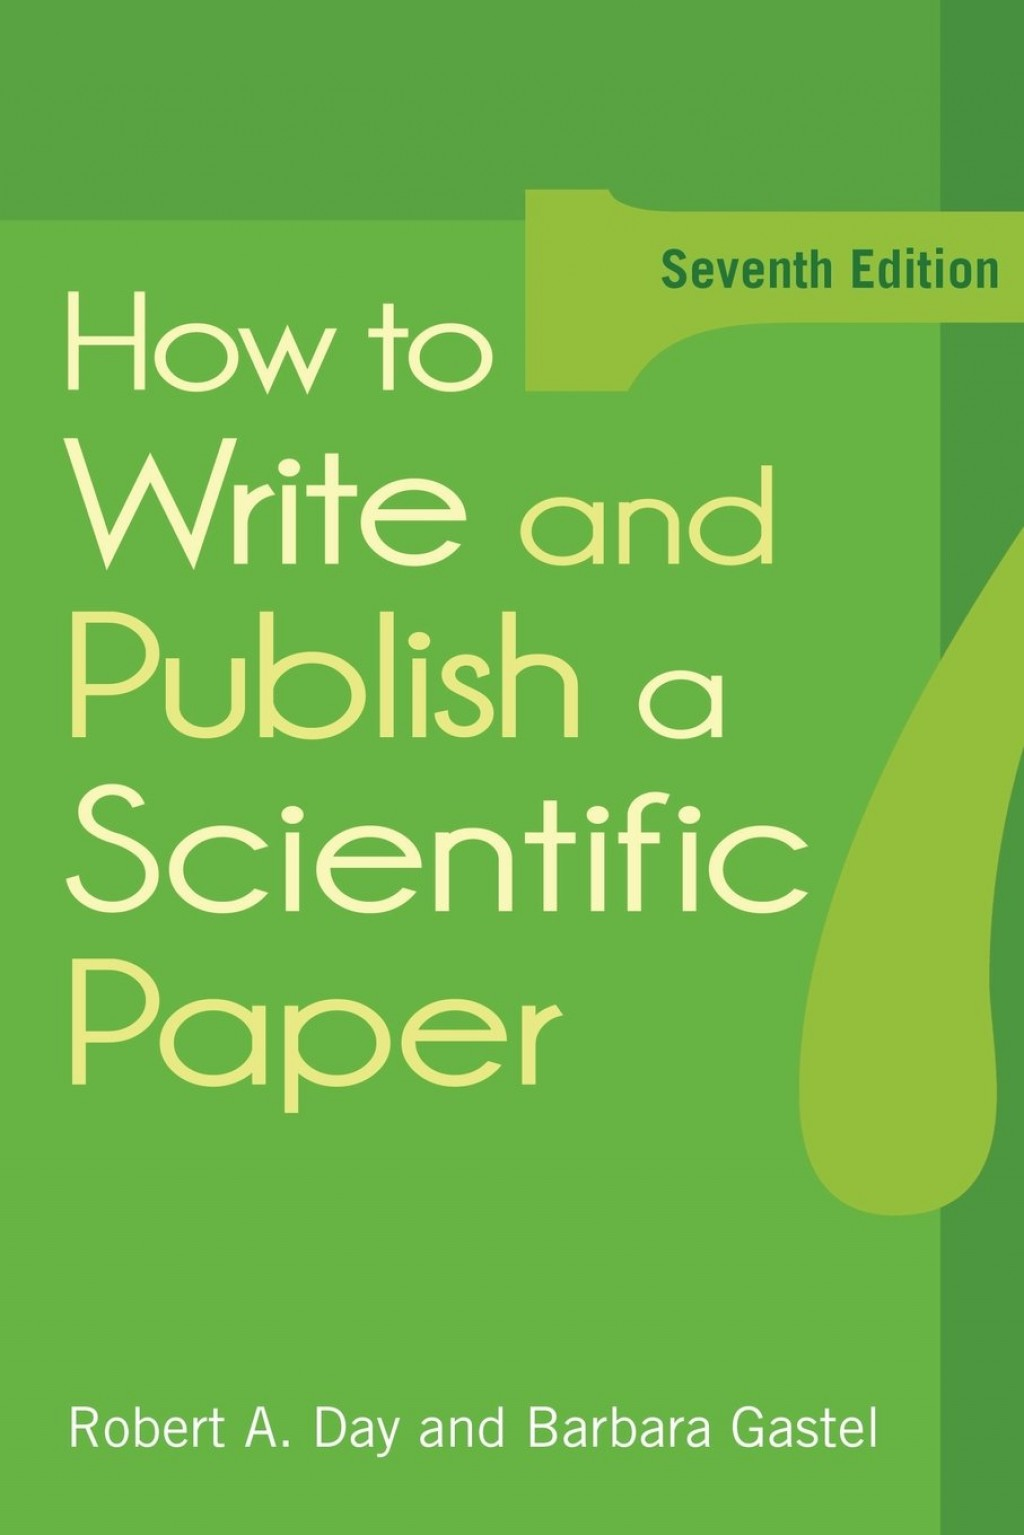 002 Research Paper How To Write Scientific Pdf Writing Sensational And Publish A Computer Science Large